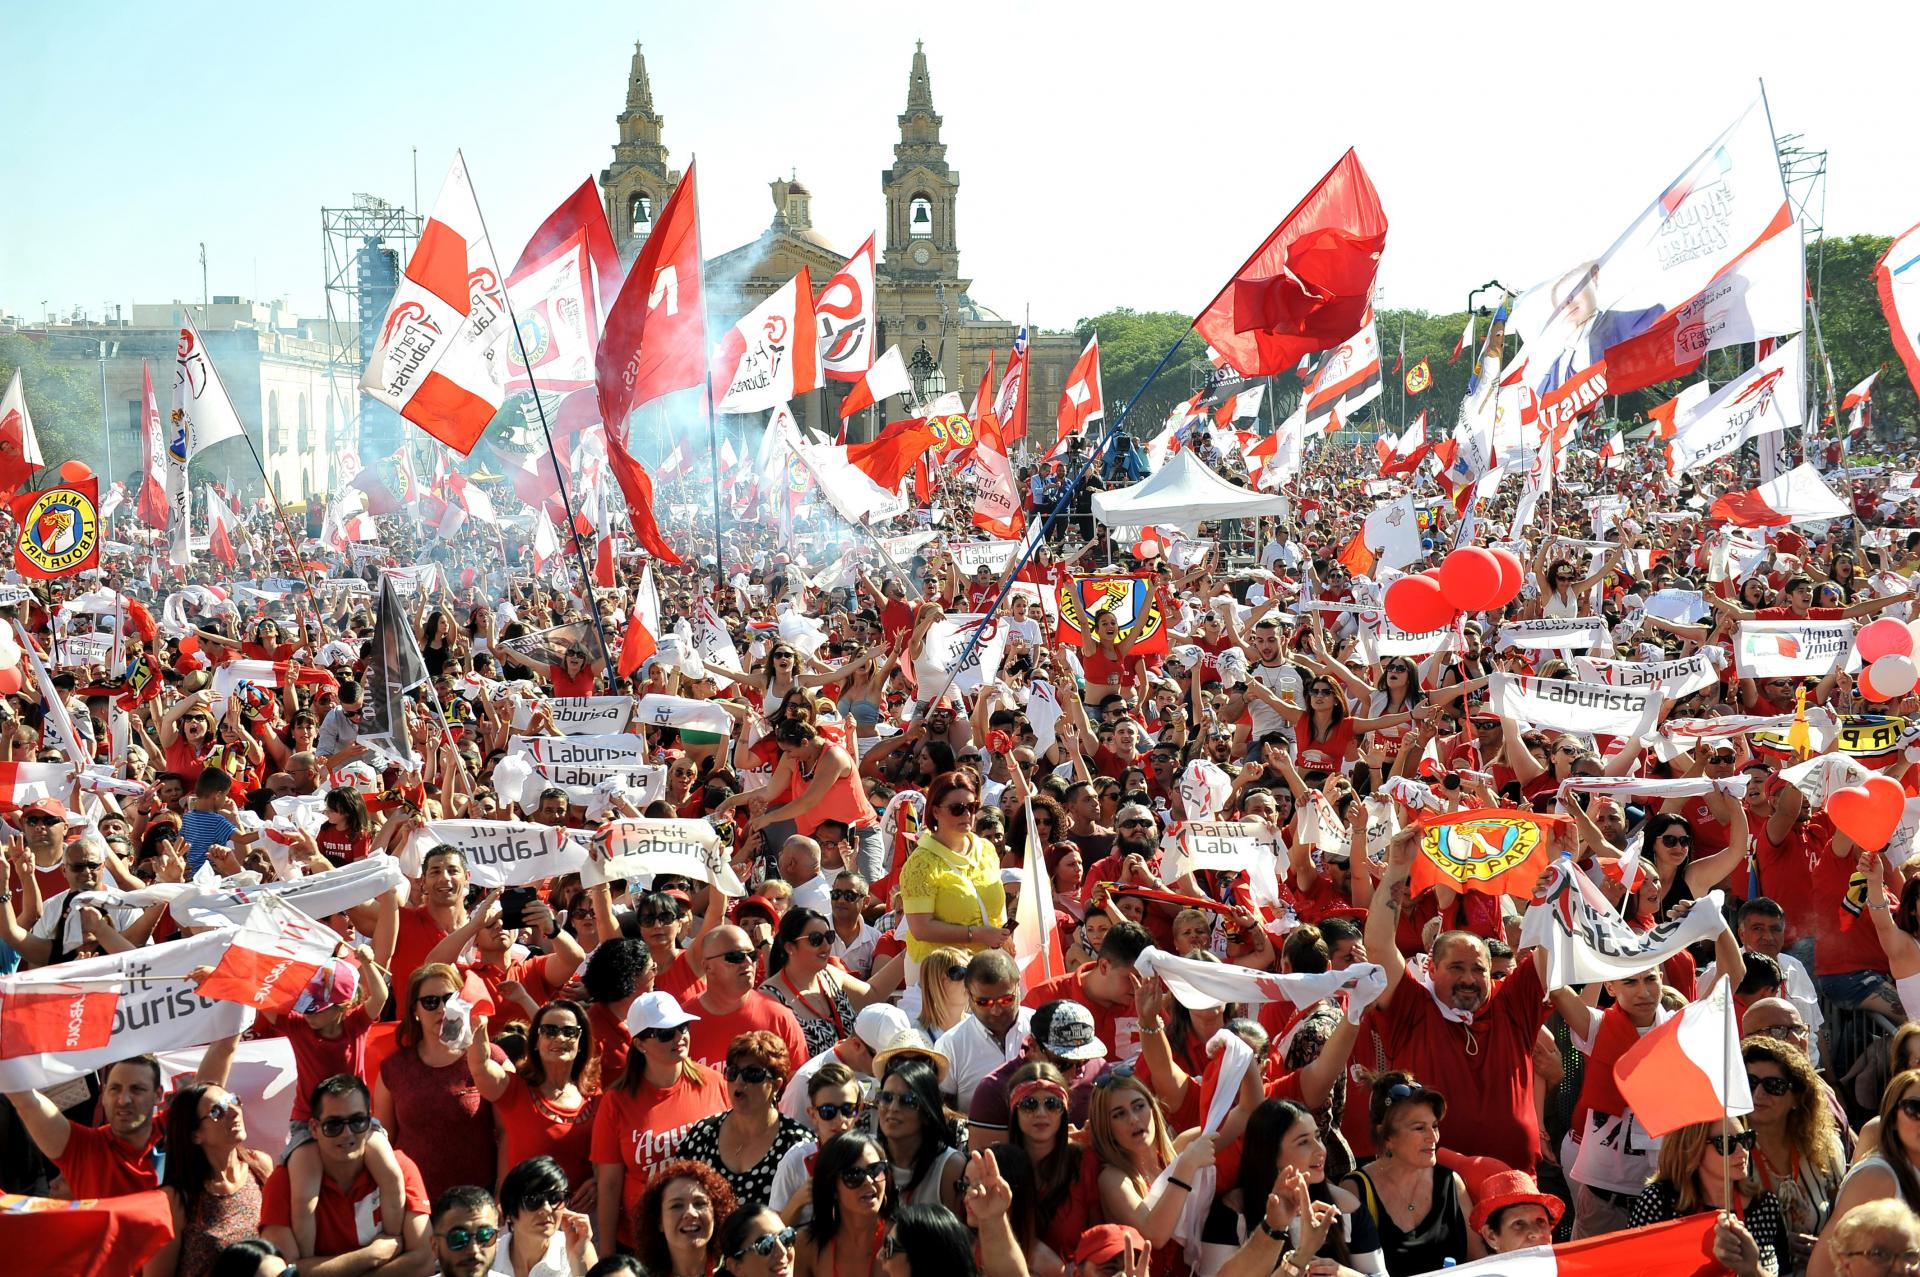 Labour voters at a 2017 rally. Photo: Chris Sant Fournier